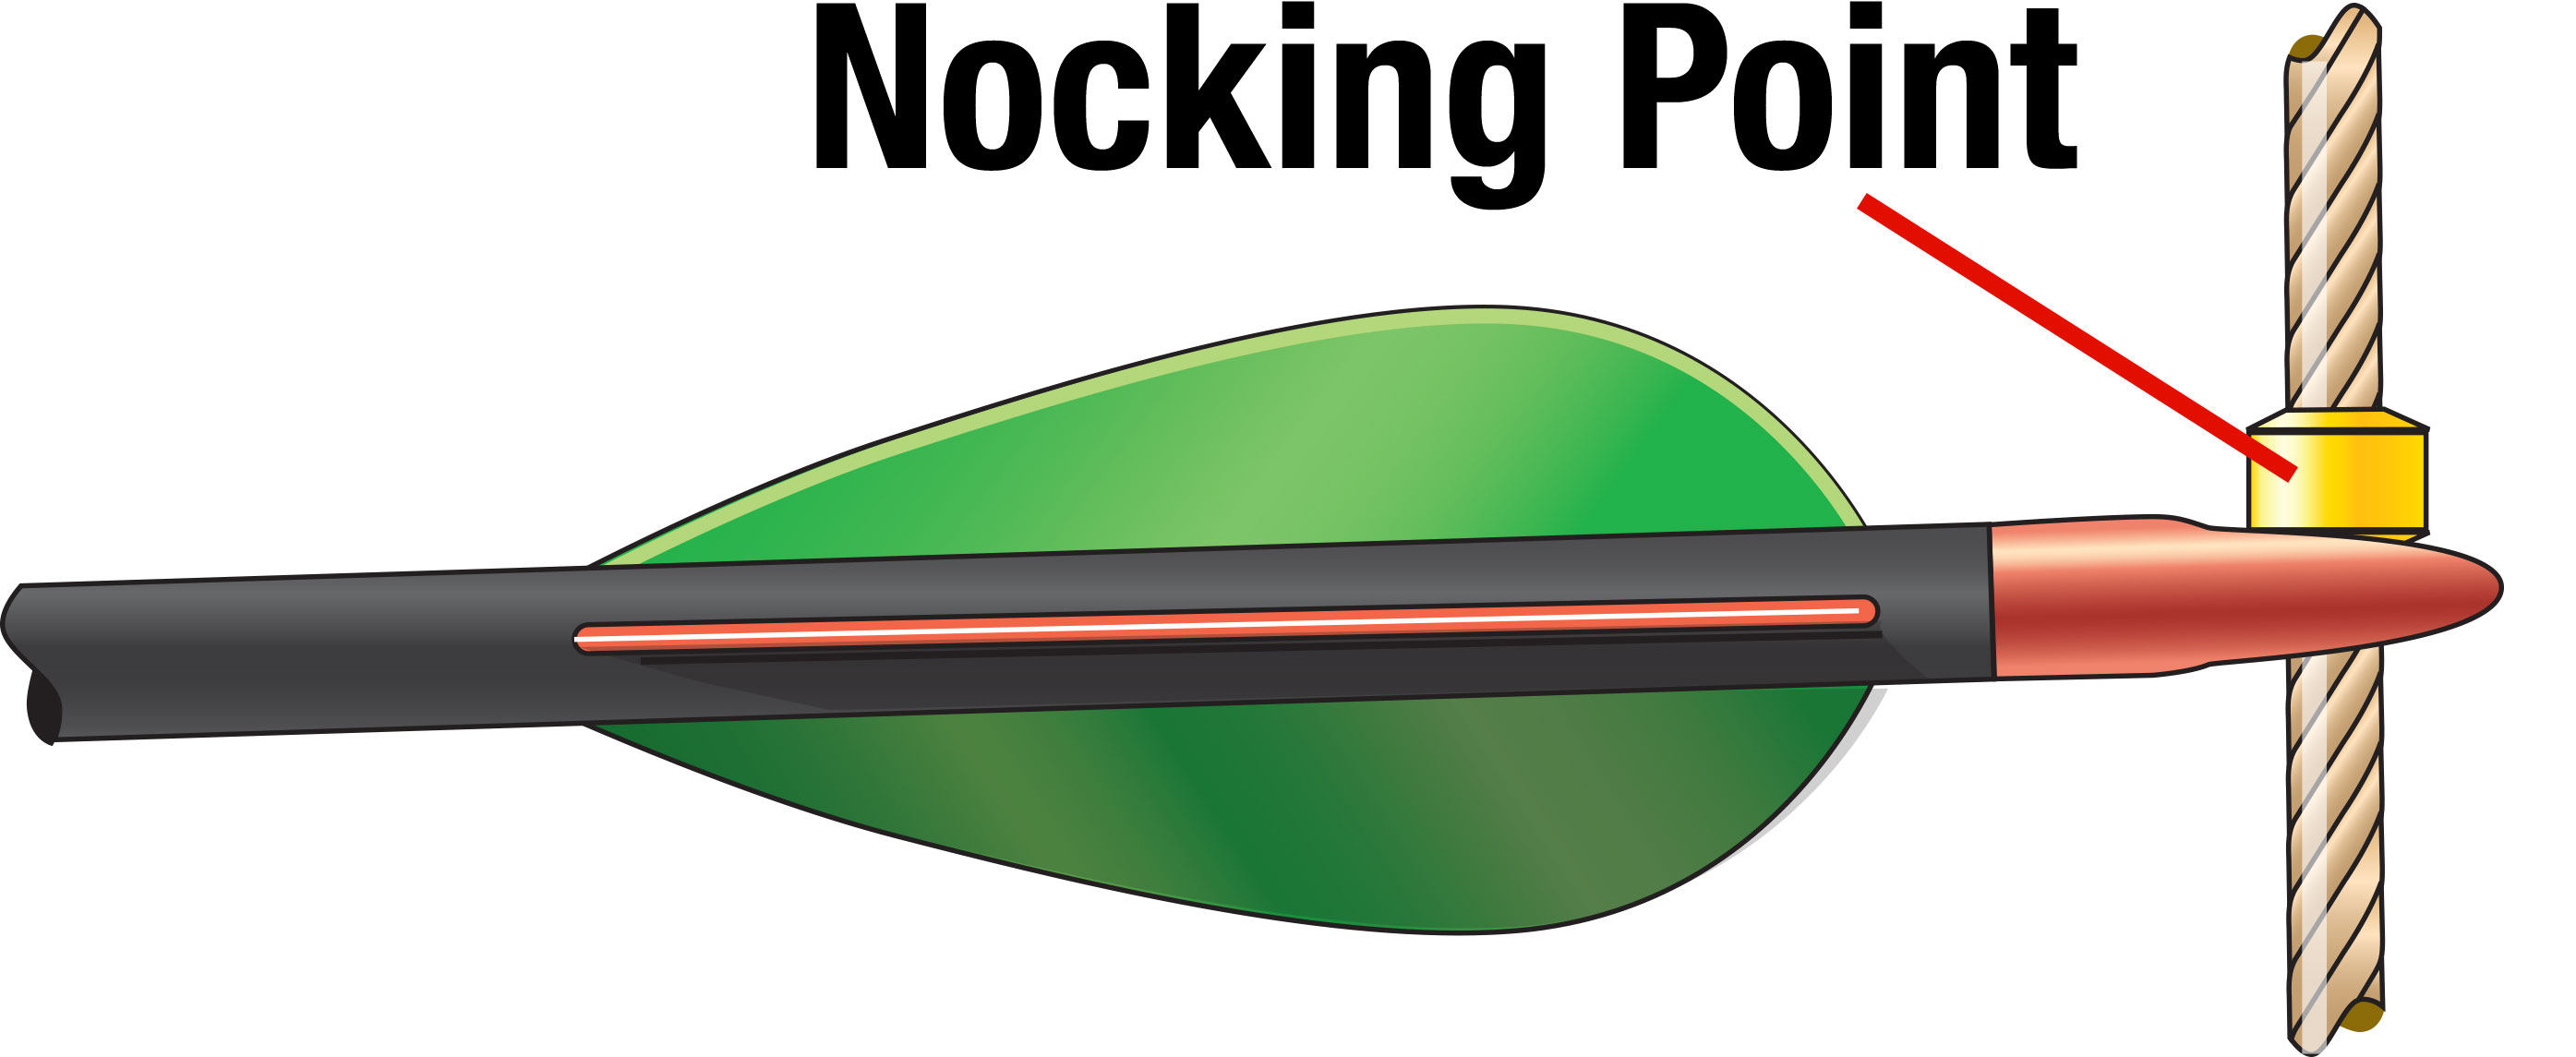 Nocking point on a bowstring